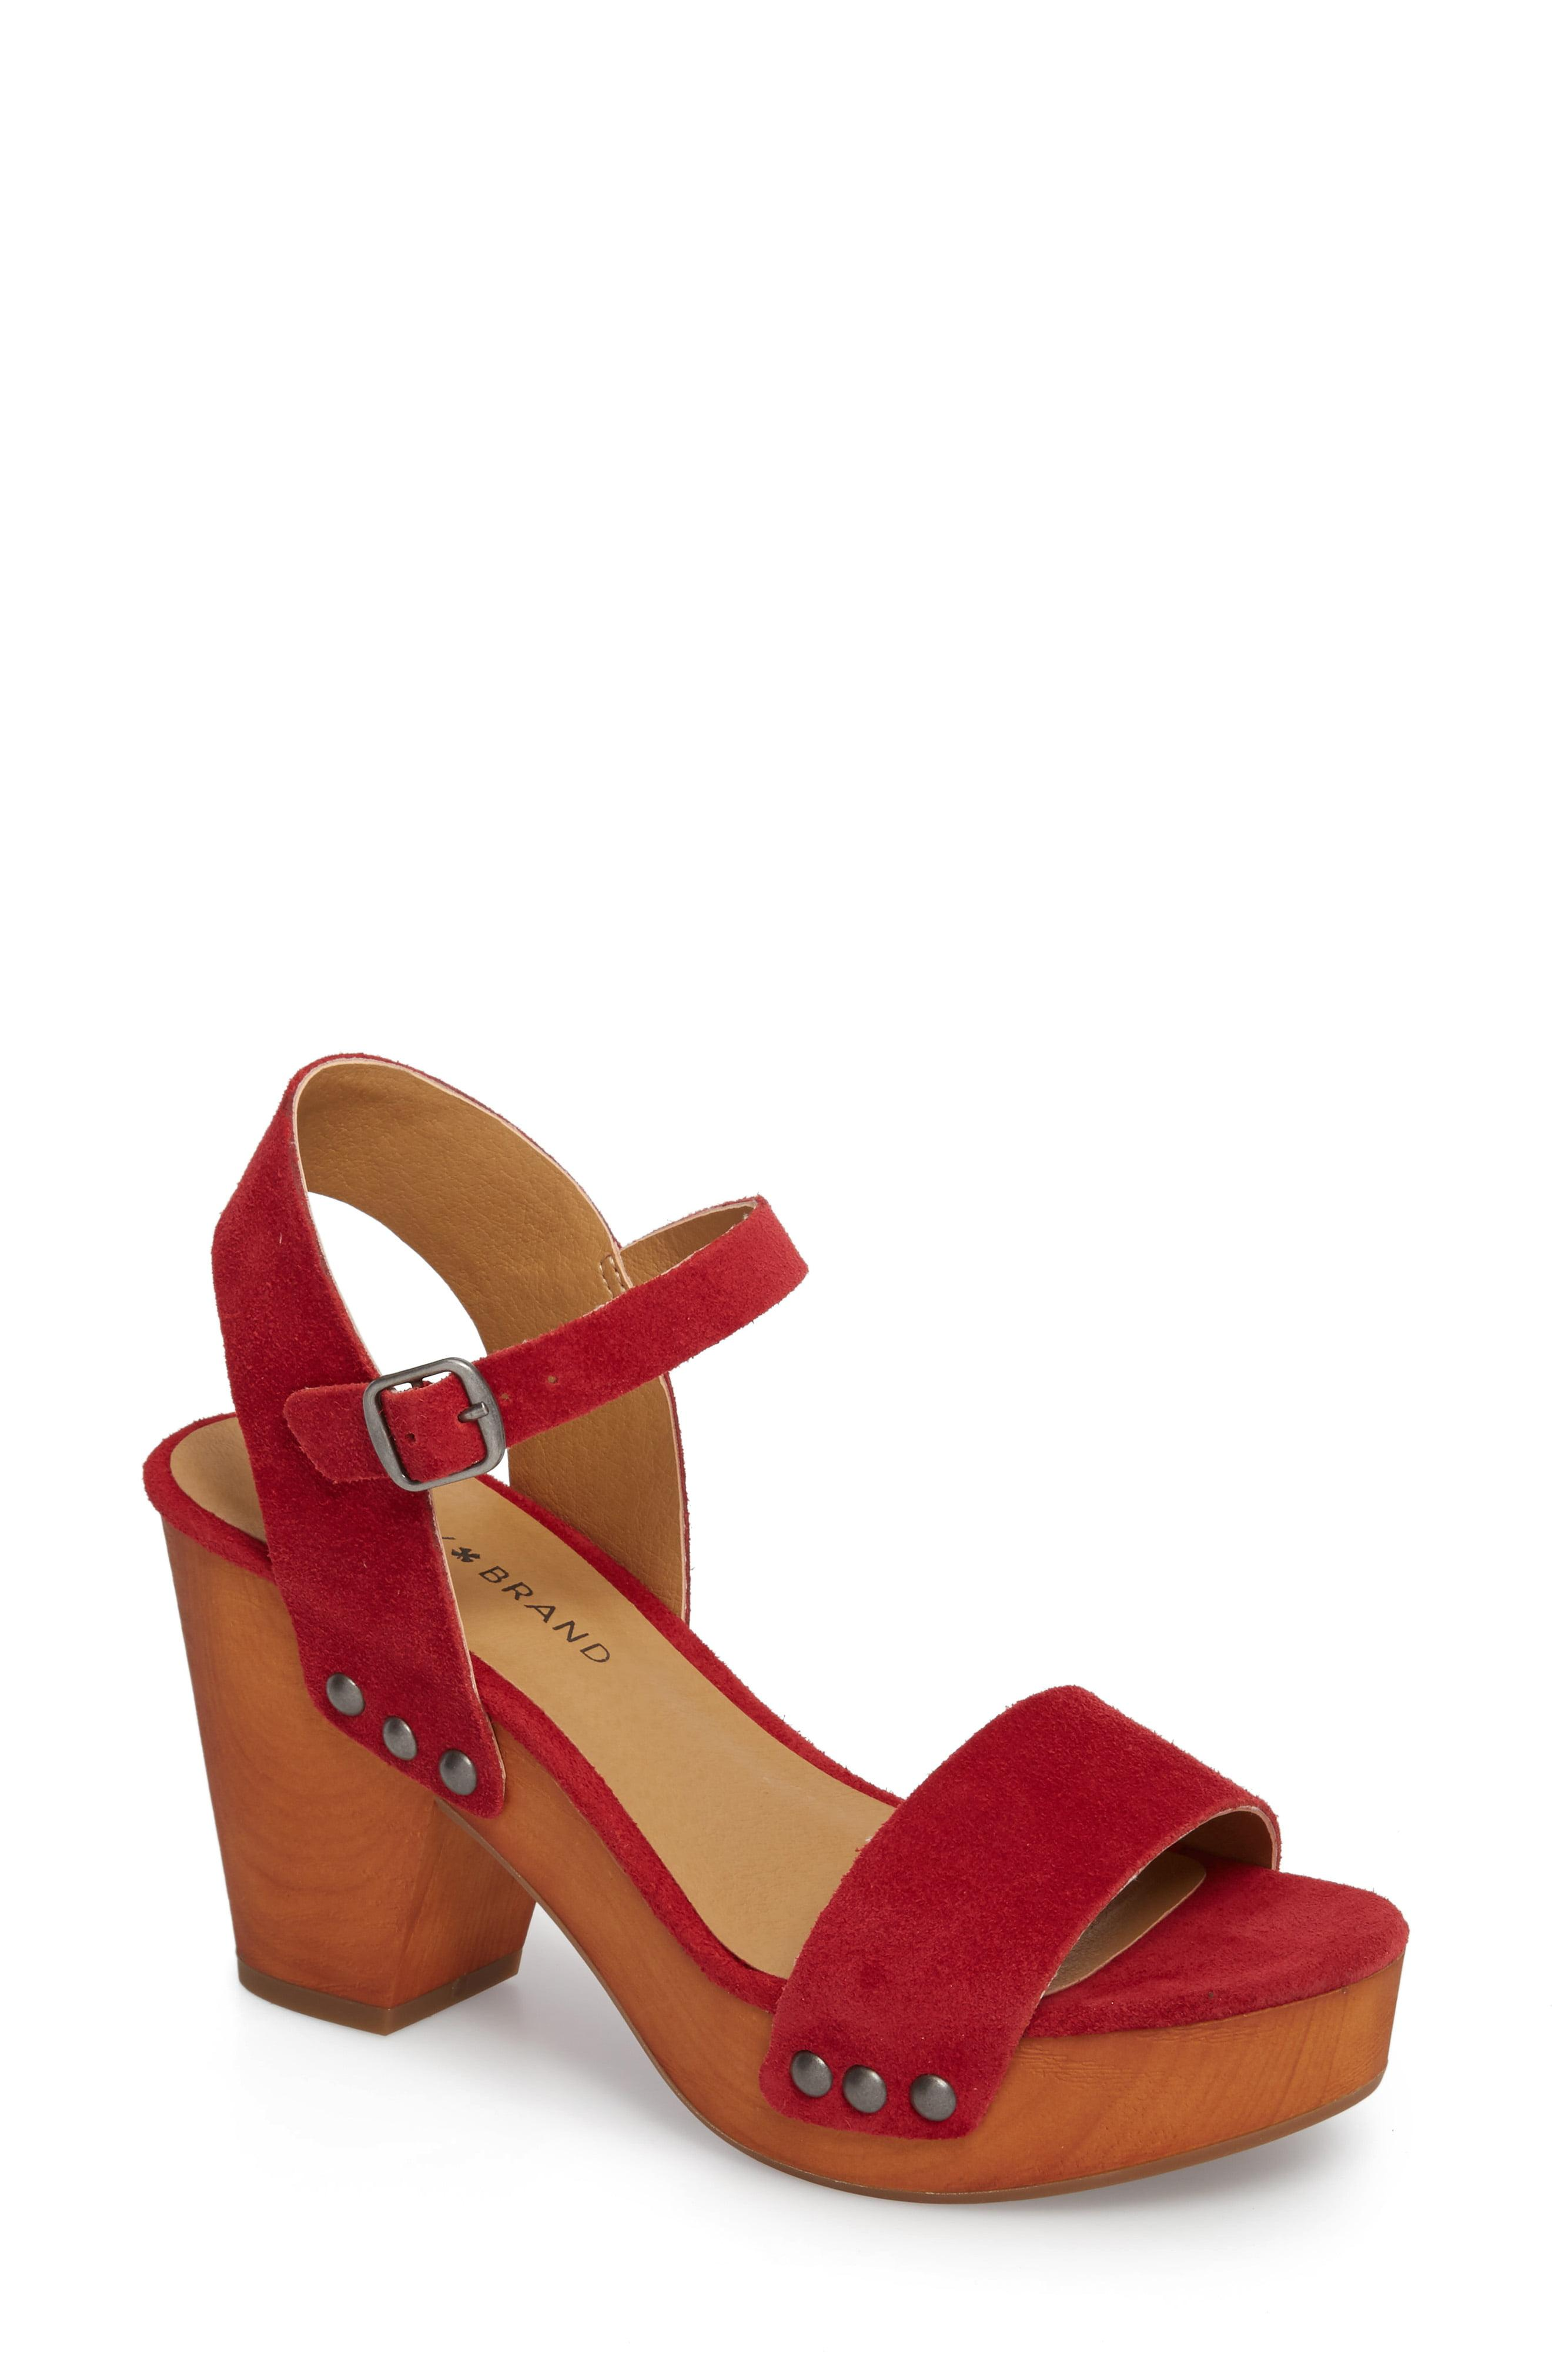 24948ceb677 Lyst - Lucky Brand Trisa Platform Sandal in Red